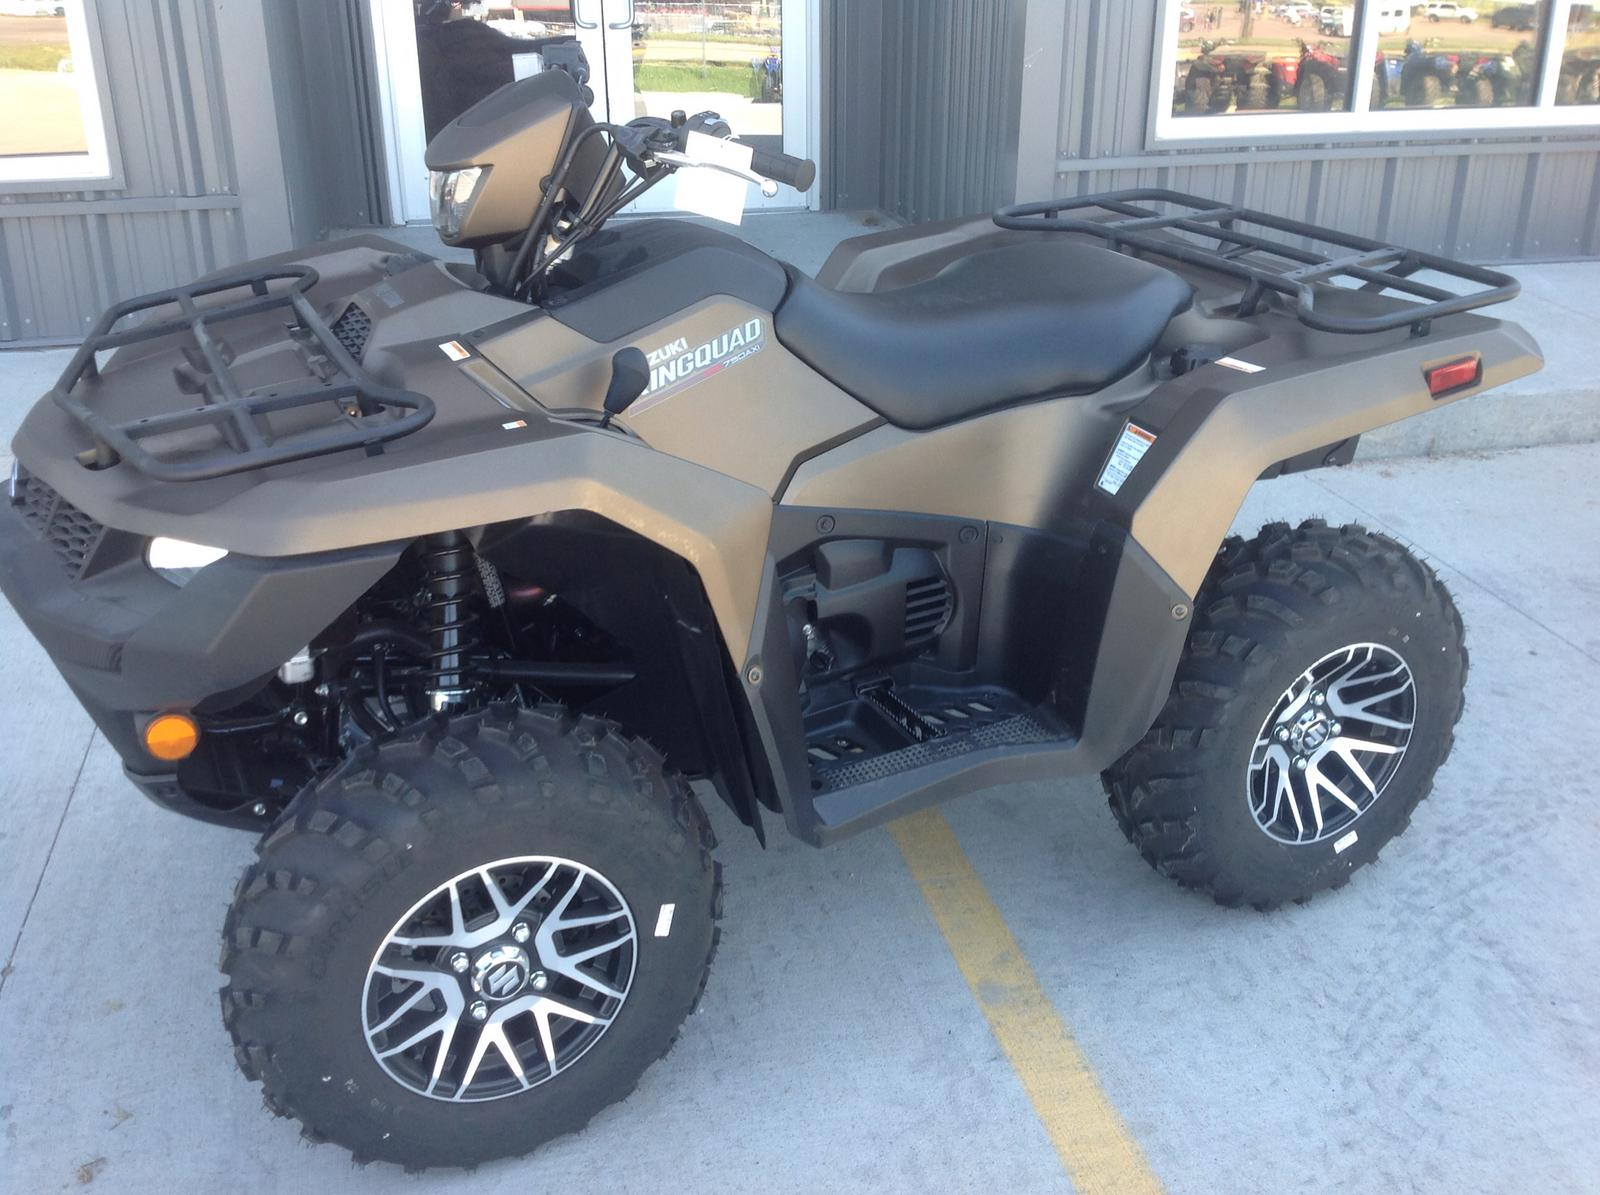 Inventory from Arctic Cat and Suzuki Lewis Motor Sports